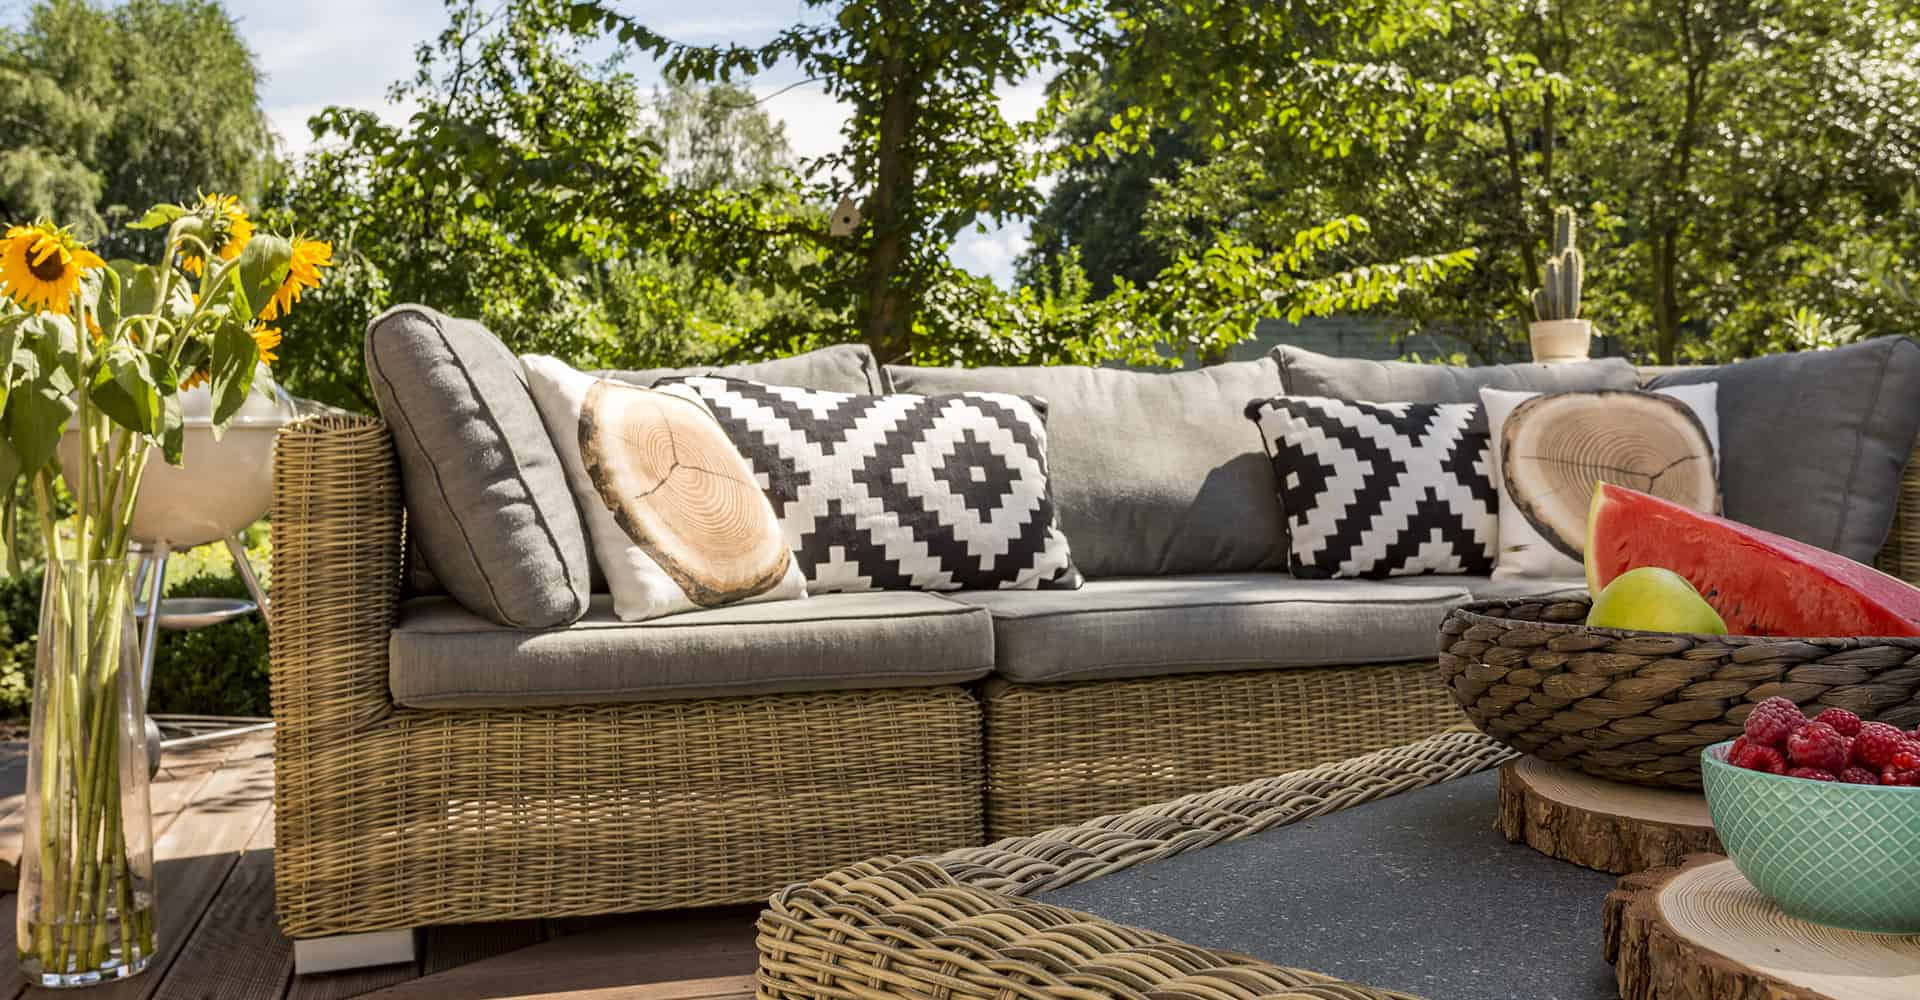 10 Best Garden Furniture Covers UK (Oct 10 Review)